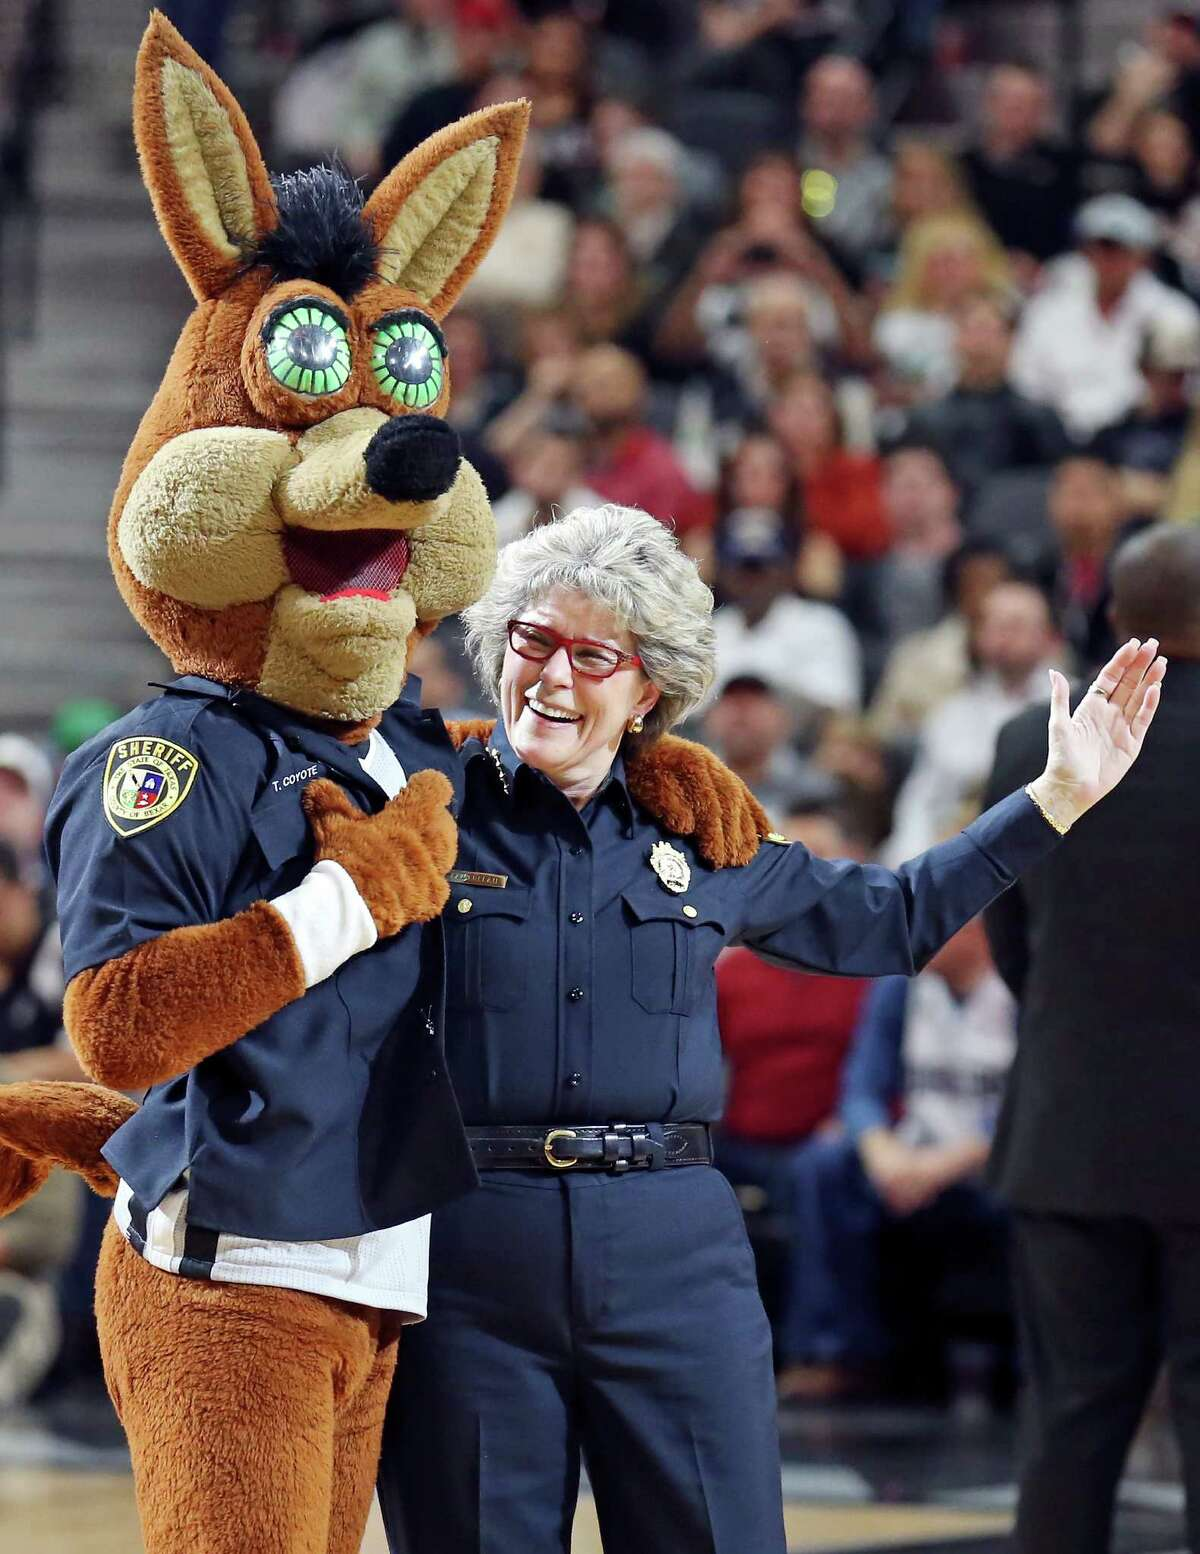 The San Antonio Spurs Coyote performs with Sheriff Susan Pamerleau during a timeout in the game with the Dallas Mavericks Sunday Jan. 17, 2016 at the AT&T Center.